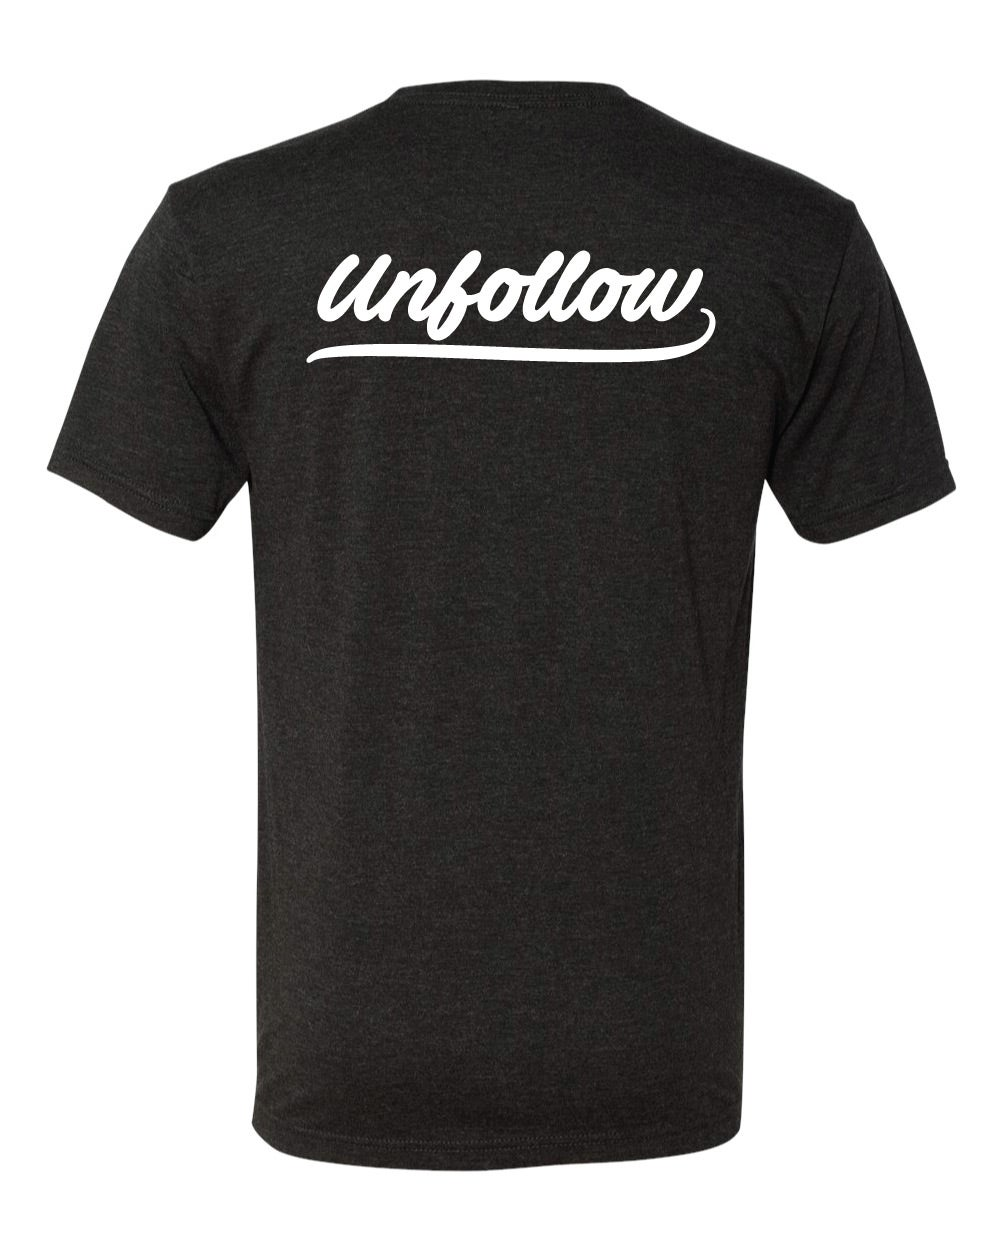 Image of Unfollow Tee